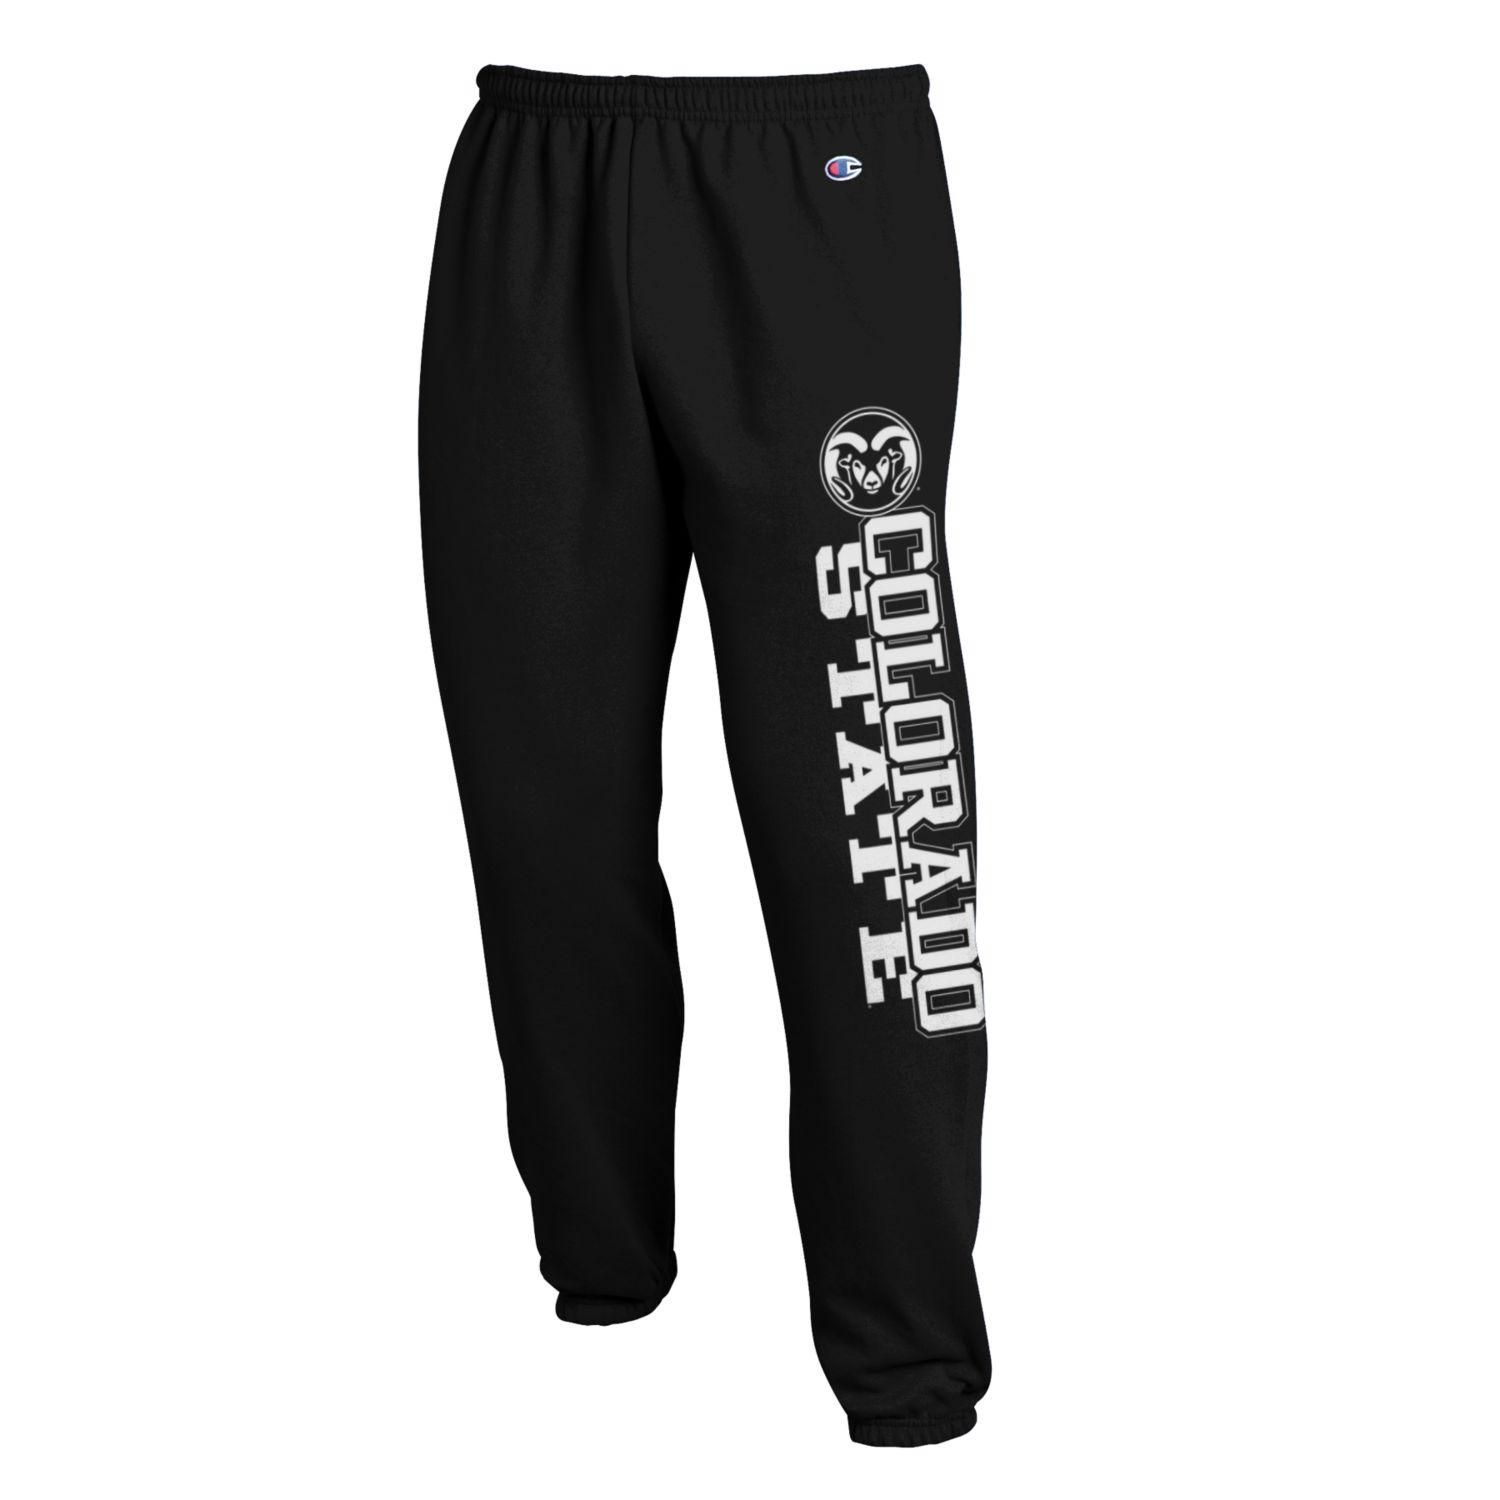 Time To Get Comfy Champion Black Colorado State University Sweatpants Sweatpants Colorado State University Cute Outfits For School [ 1500 x 1500 Pixel ]